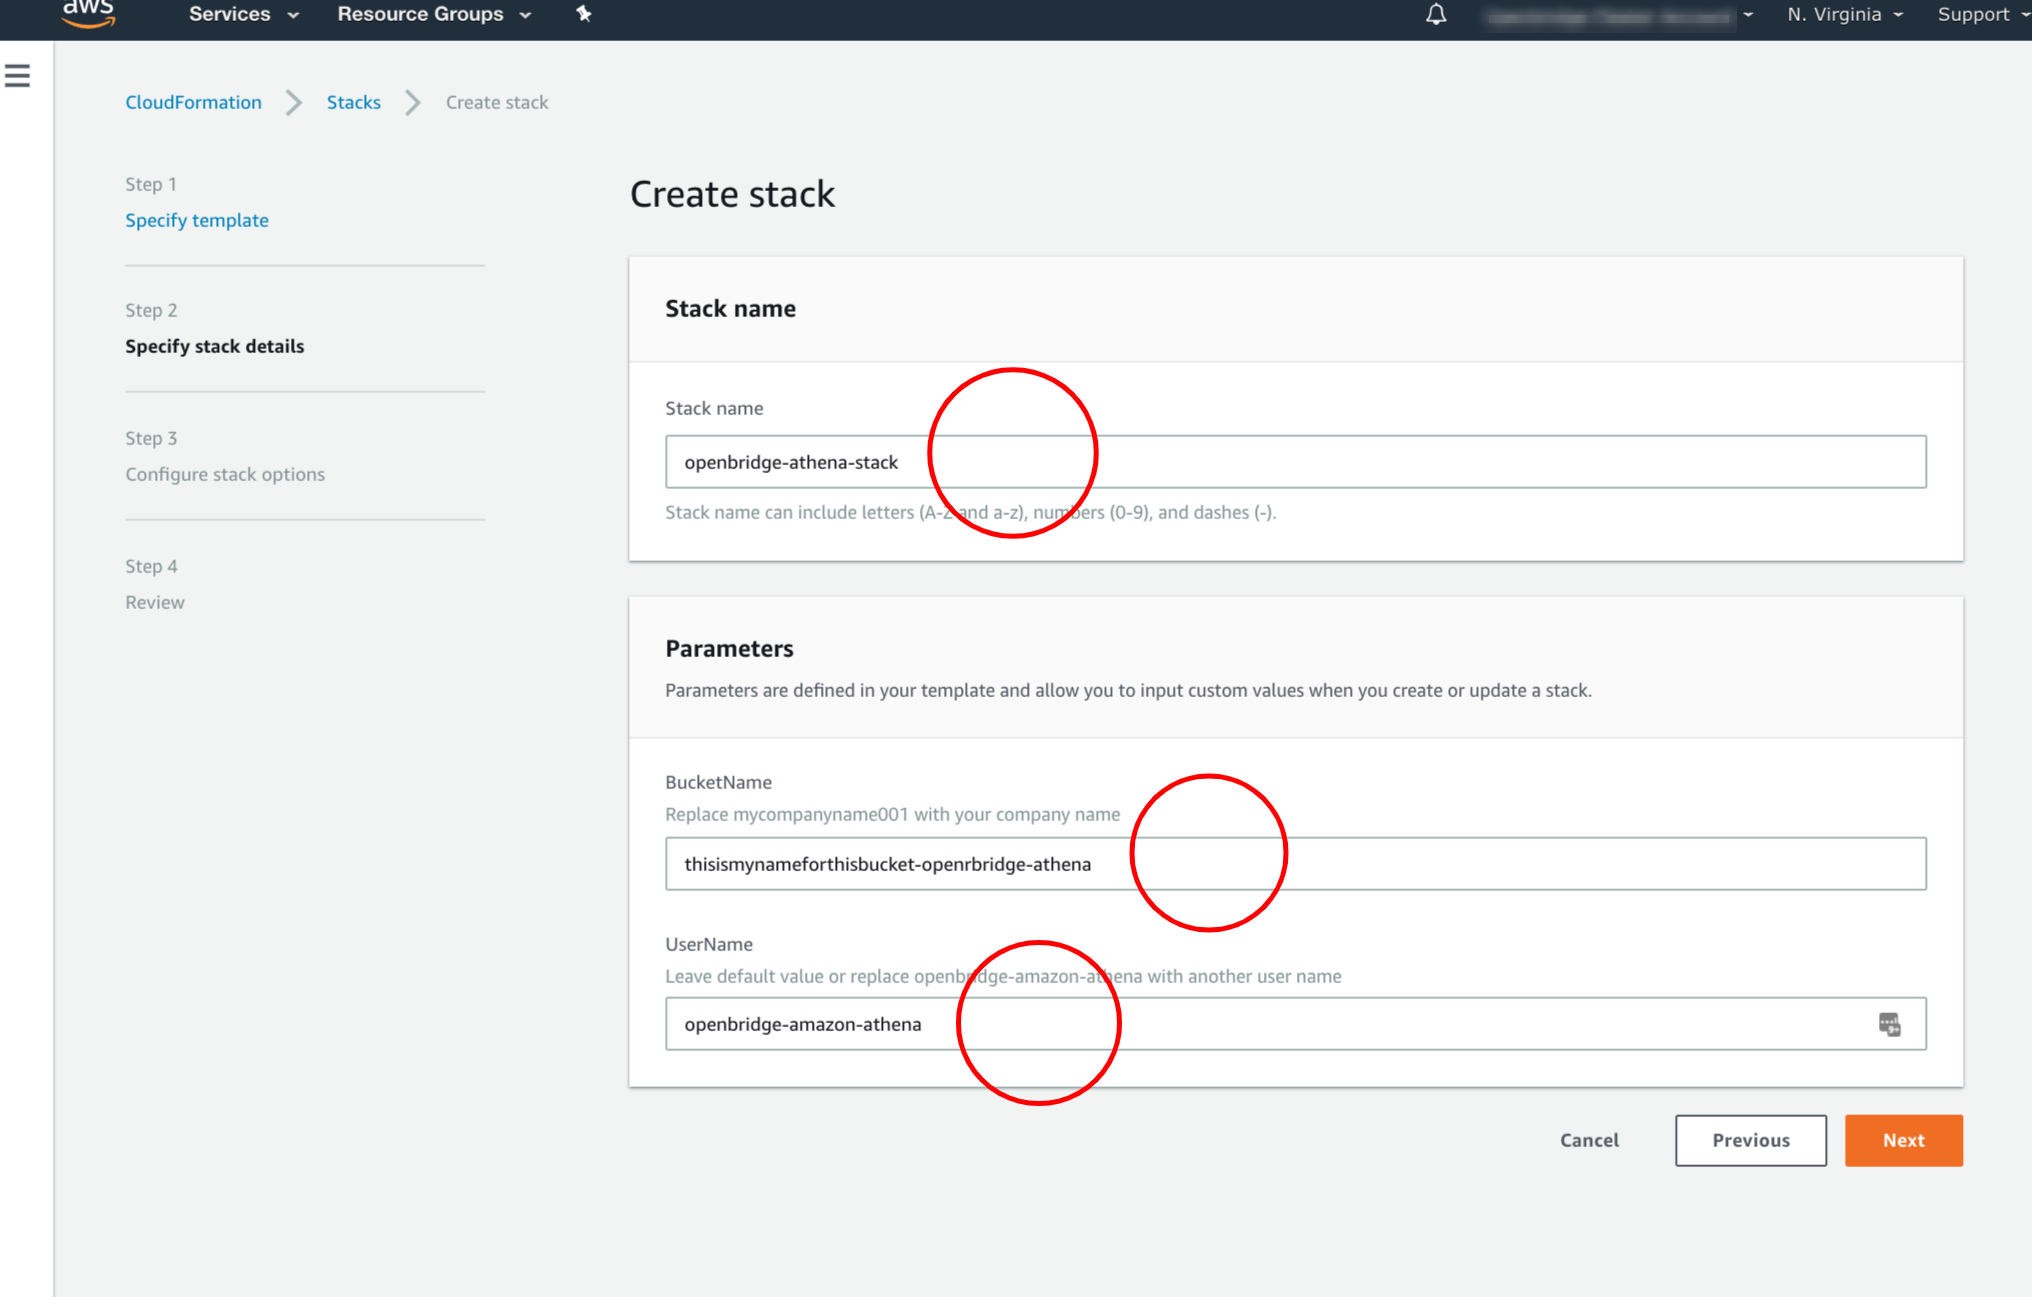 How To Use CloudFormation To Configure Amazon S3, IAM, and